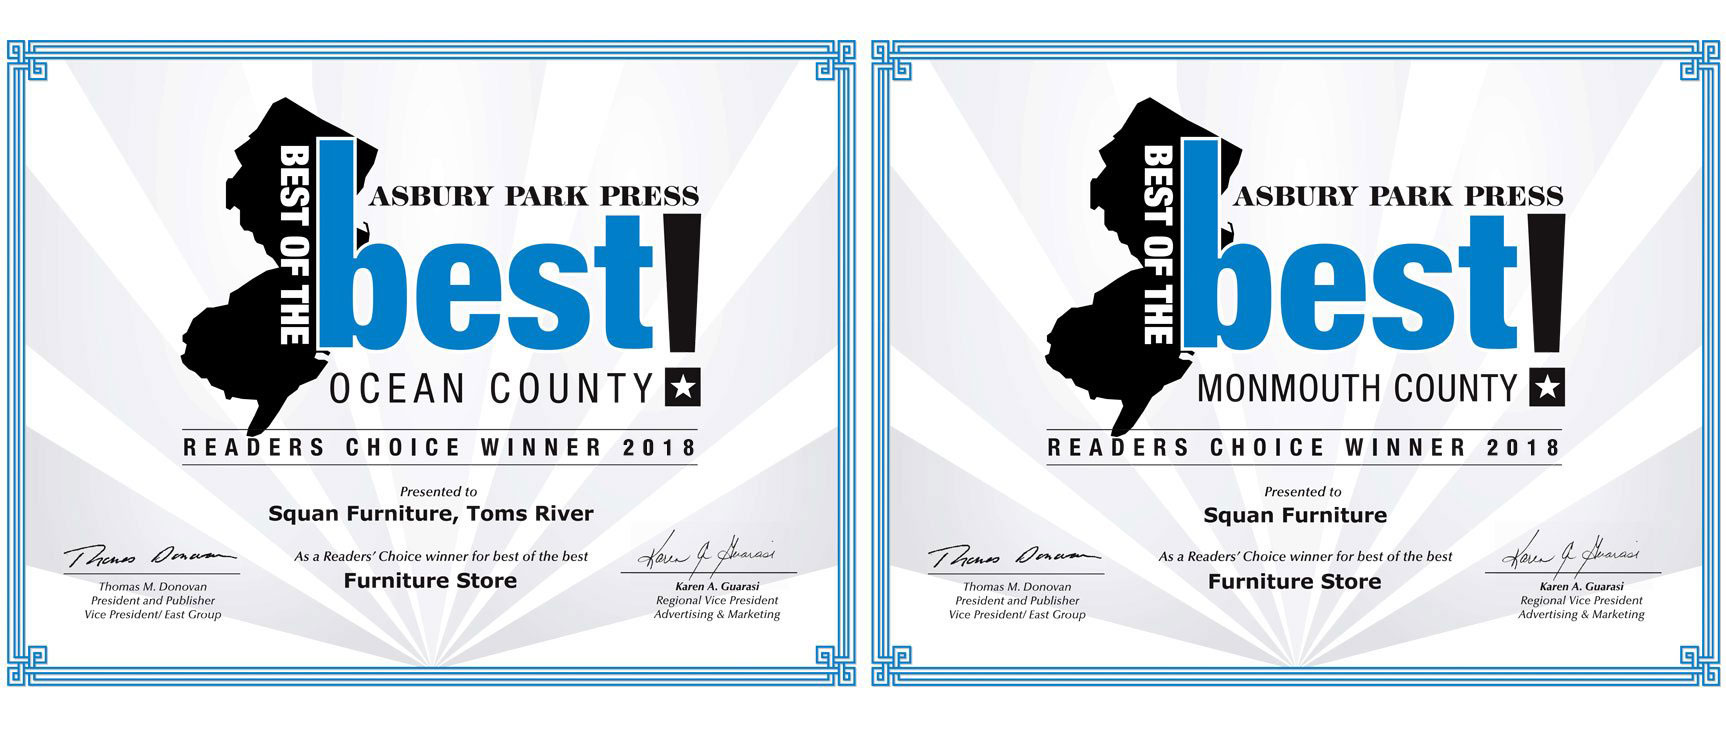 Asbury Park Press Best of the Best Award Winner Squan Furniture